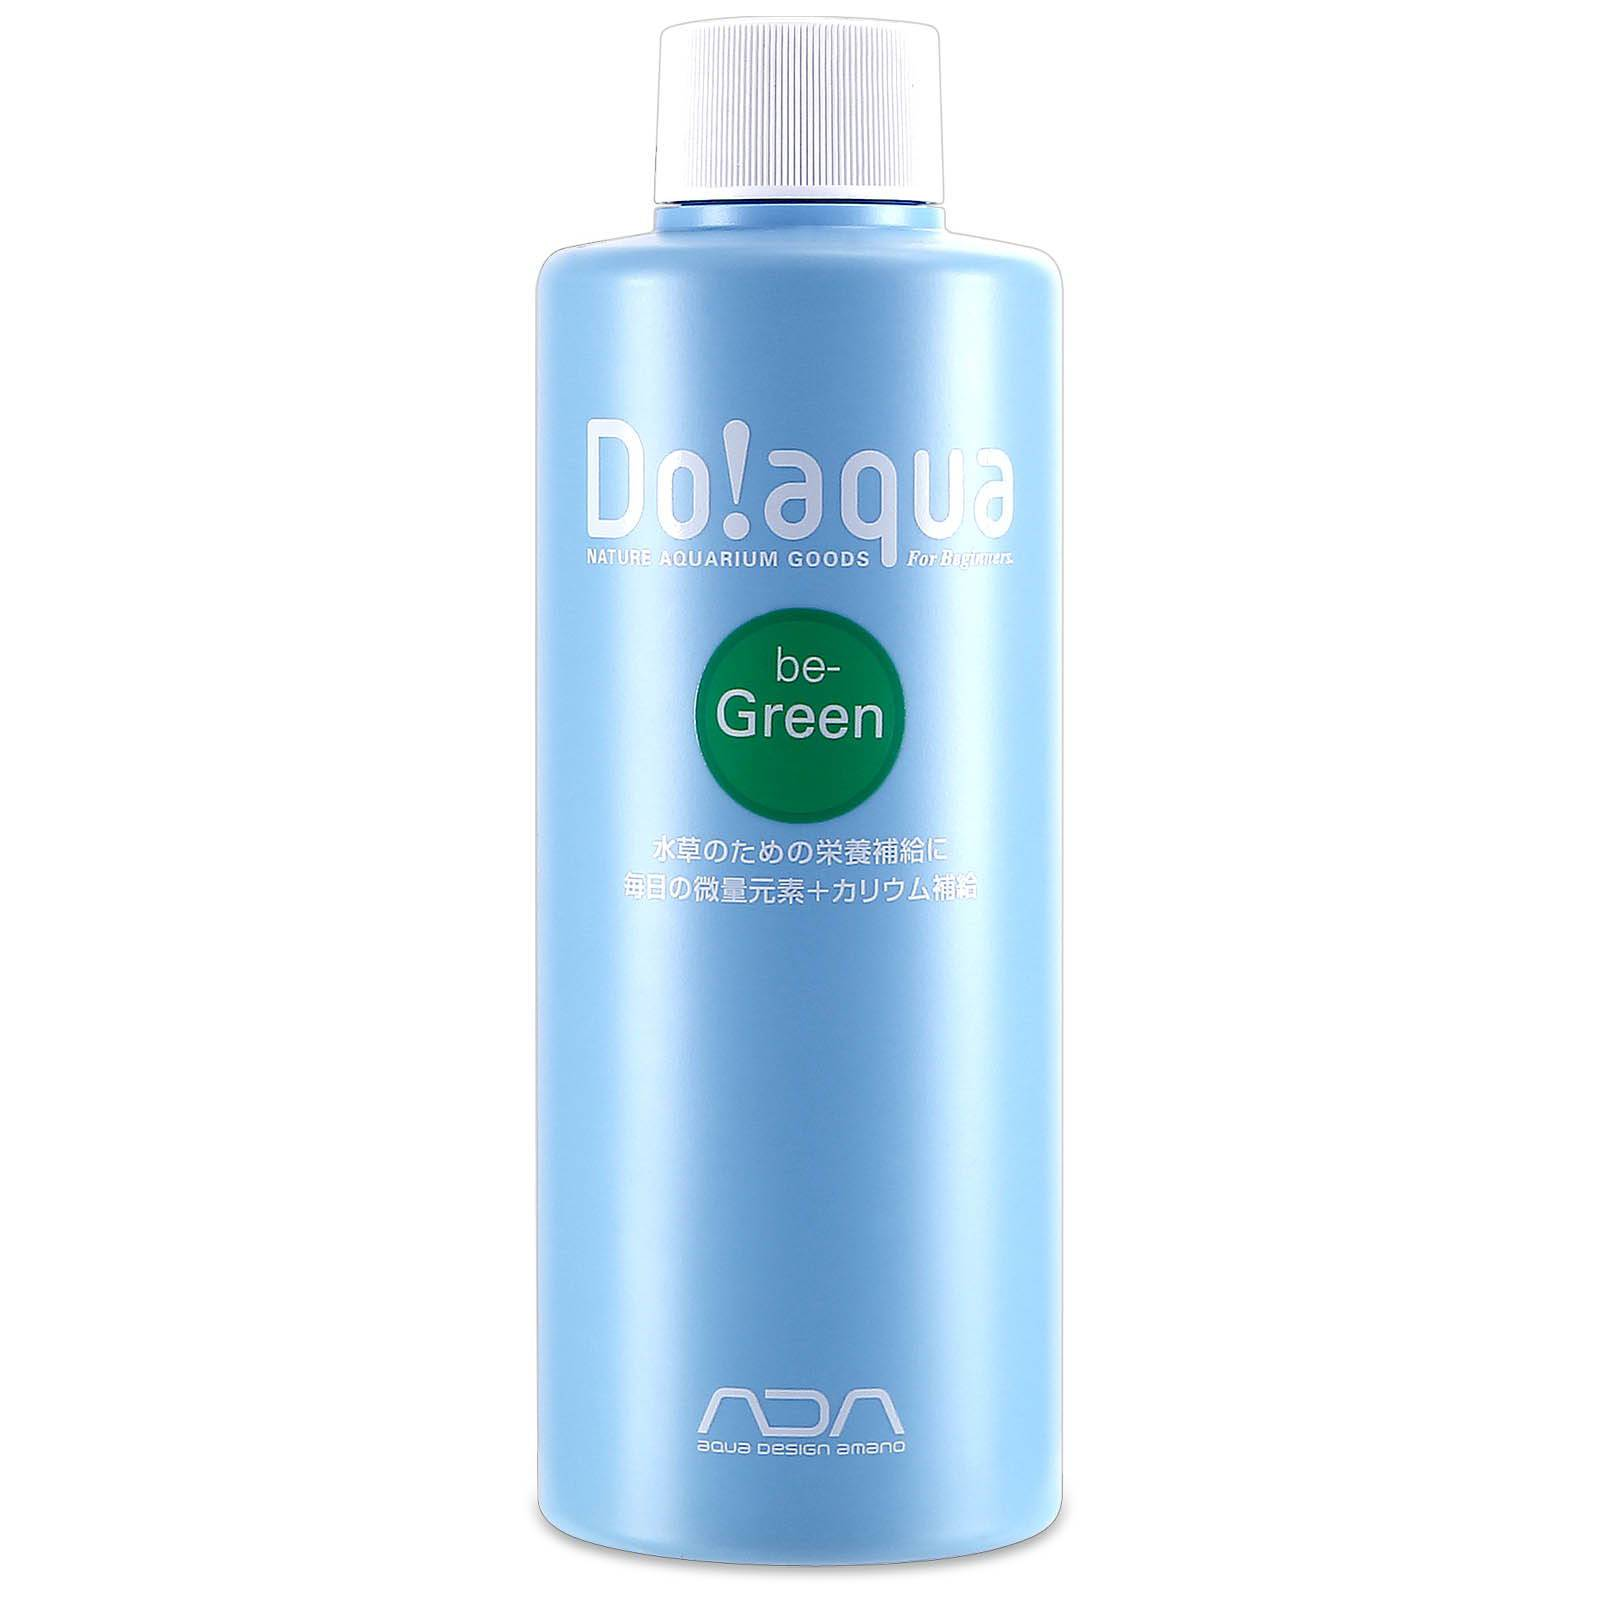 Do!aqua - be Green - 200 ml